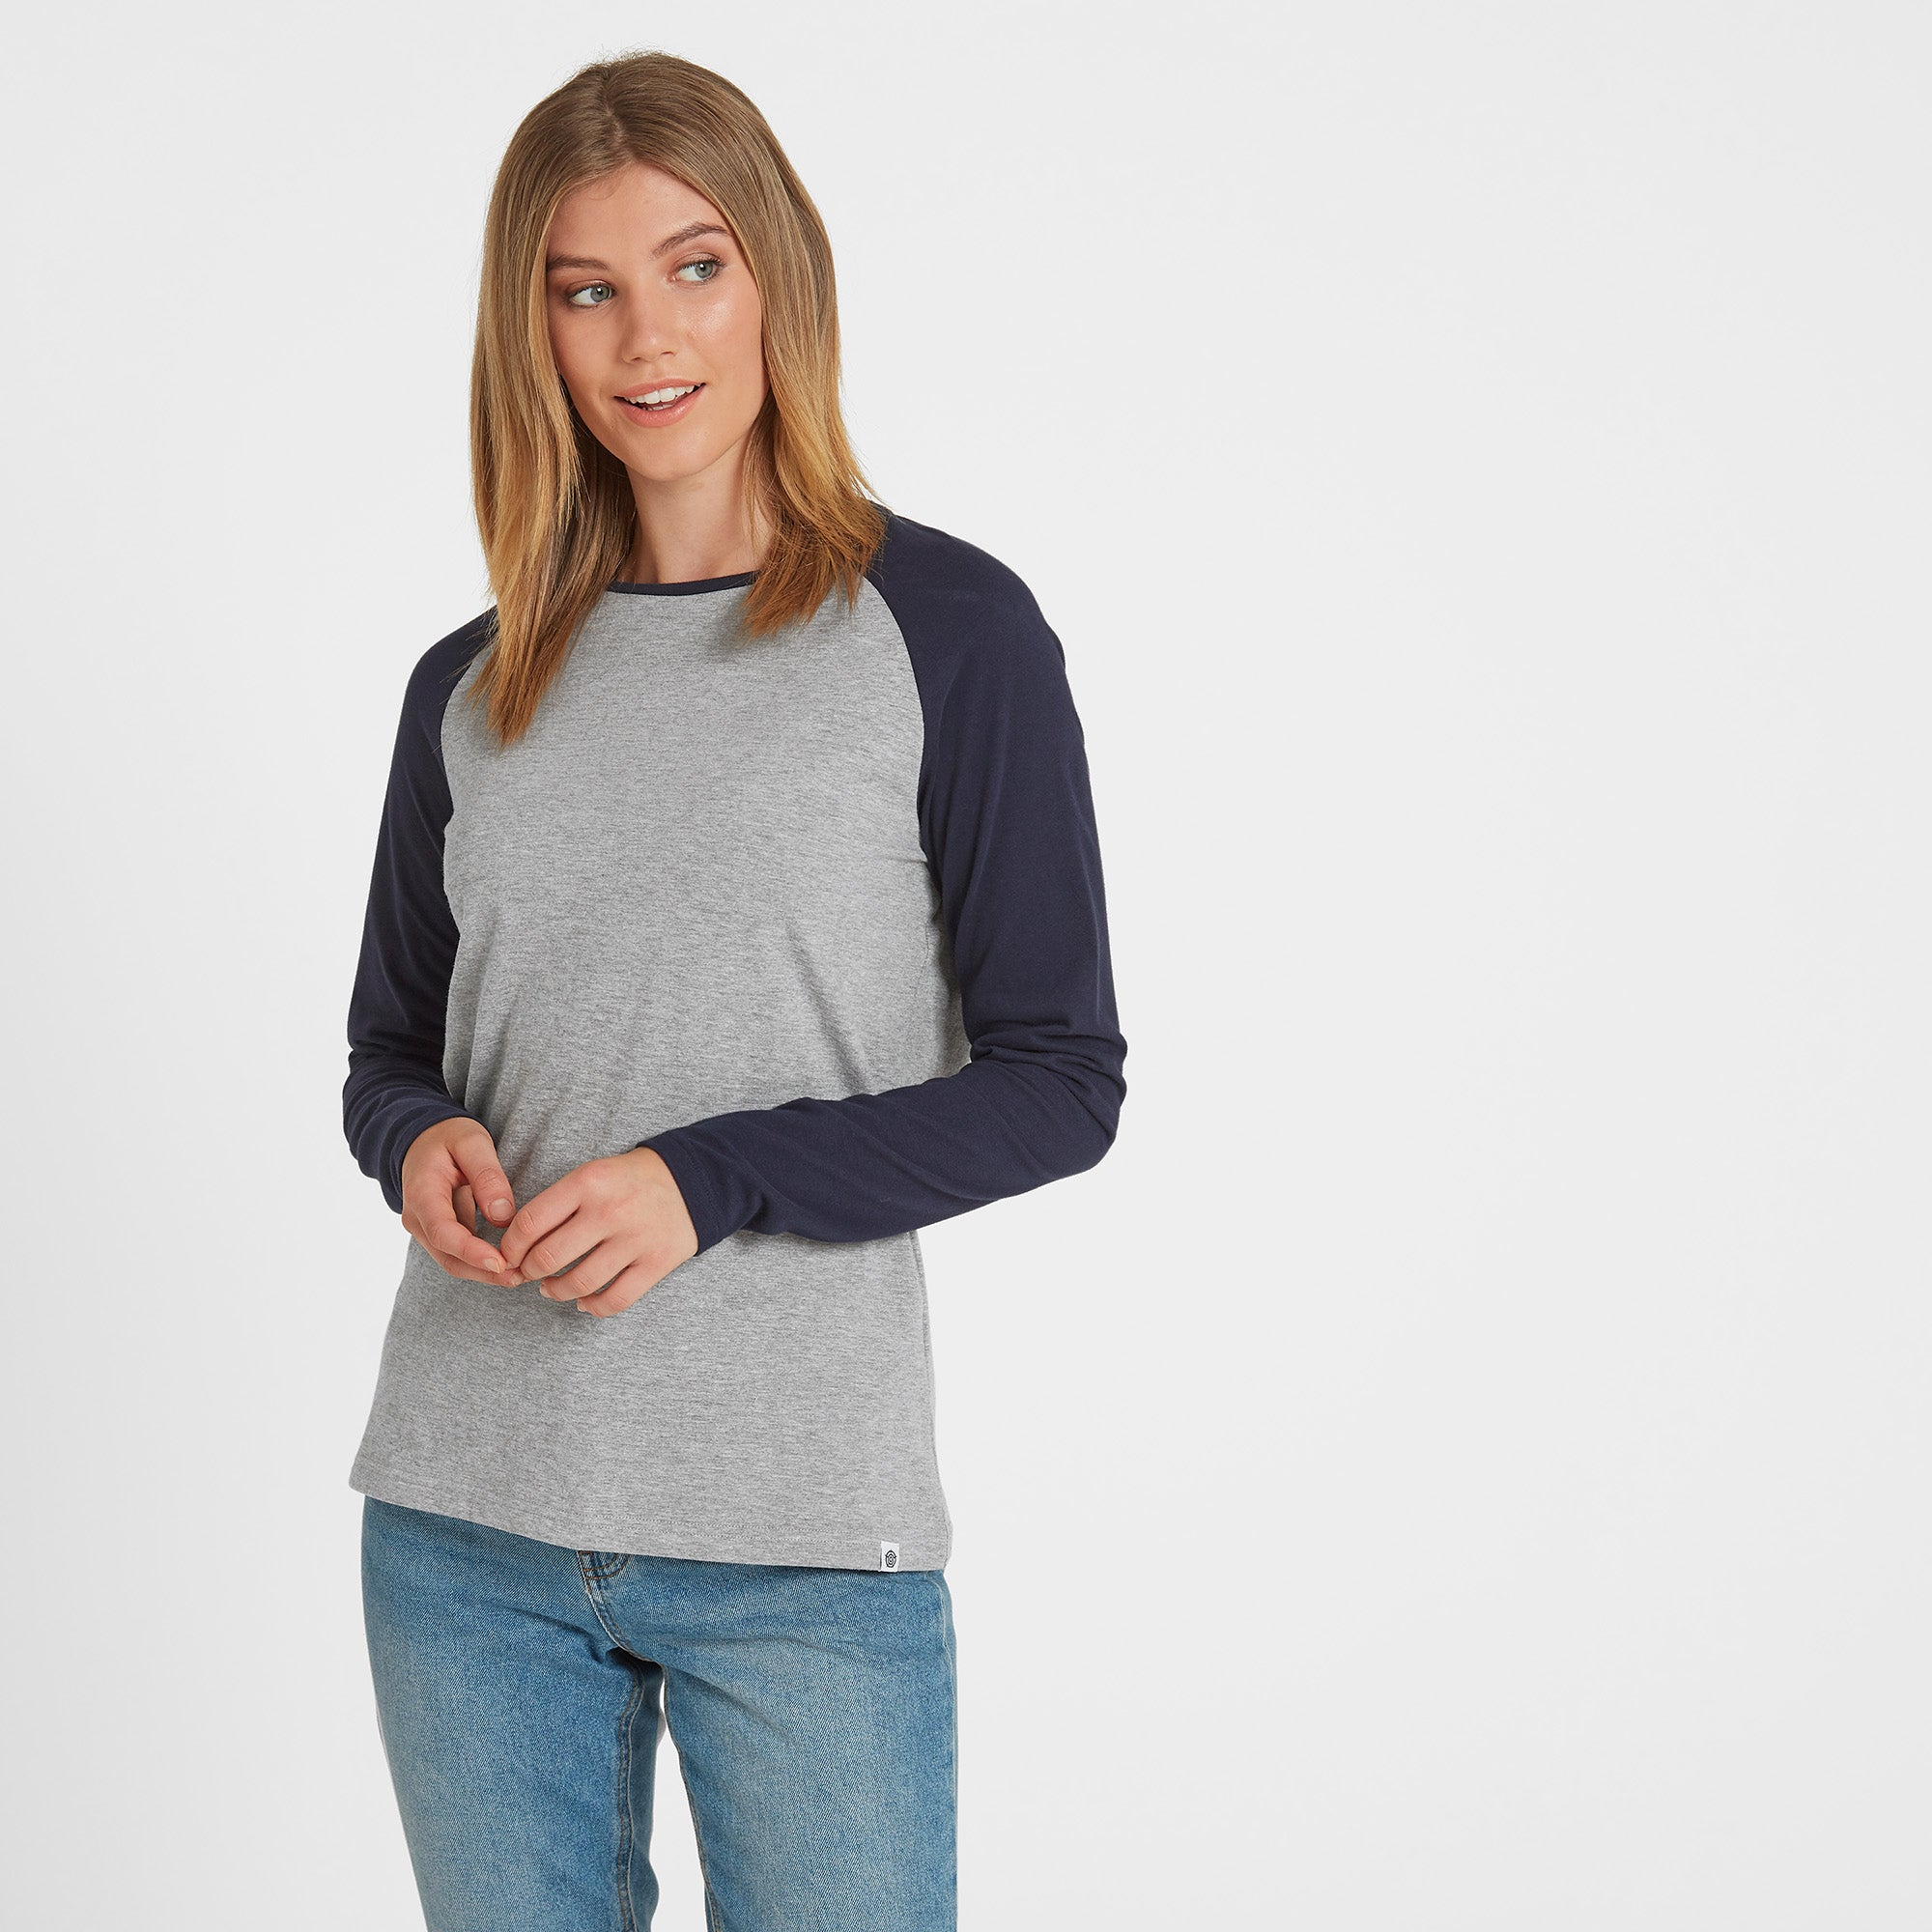 Kilwick Womens Long Sleeve Raglan T-Shirt - Grey/Navy